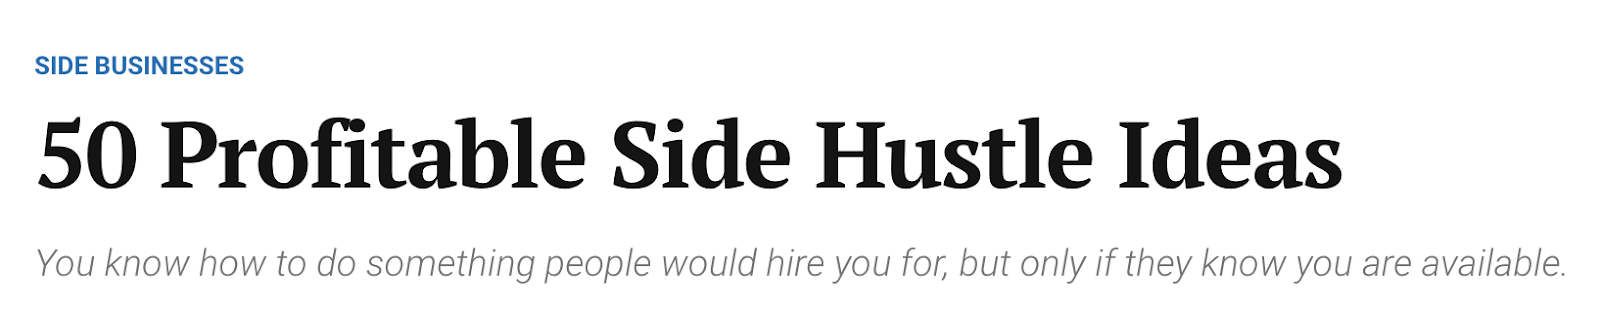 50 Profitable Side Hustle Ideas